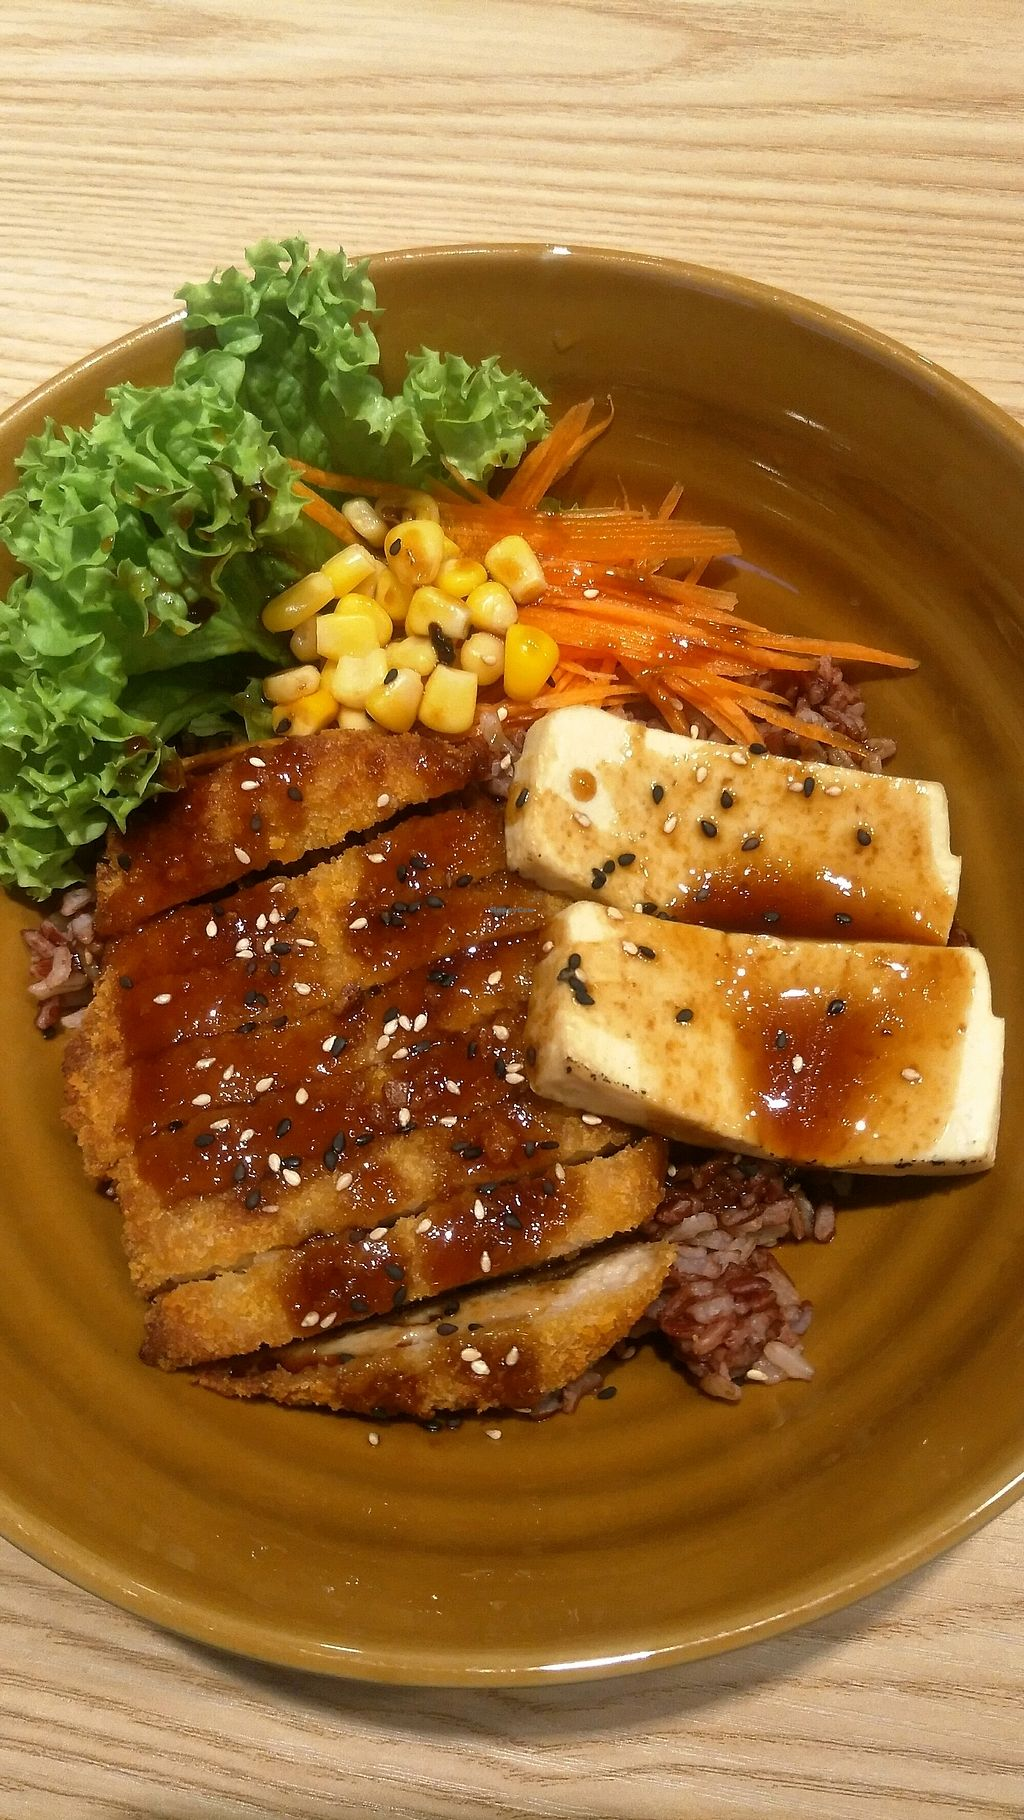 """Photo of Harmony Hut International Food  by <a href=""""/members/profile/spslcw"""">spslcw</a> <br/>chicken teriyaki cutlet rice <br/> October 14, 2017  - <a href='/contact/abuse/image/90230/314982'>Report</a>"""